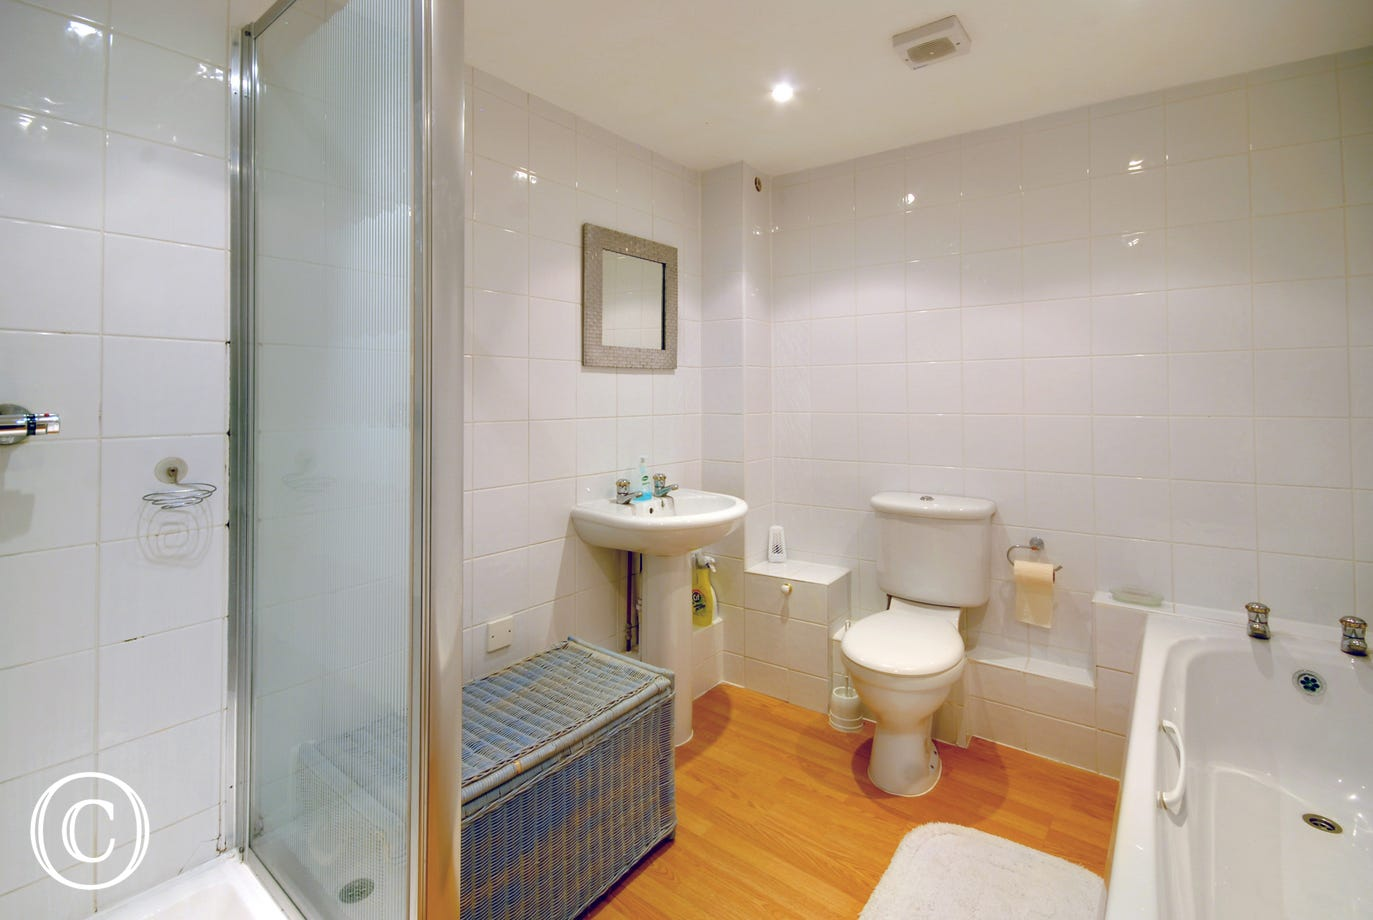 The bedrooms are served by a large spacious bathroom